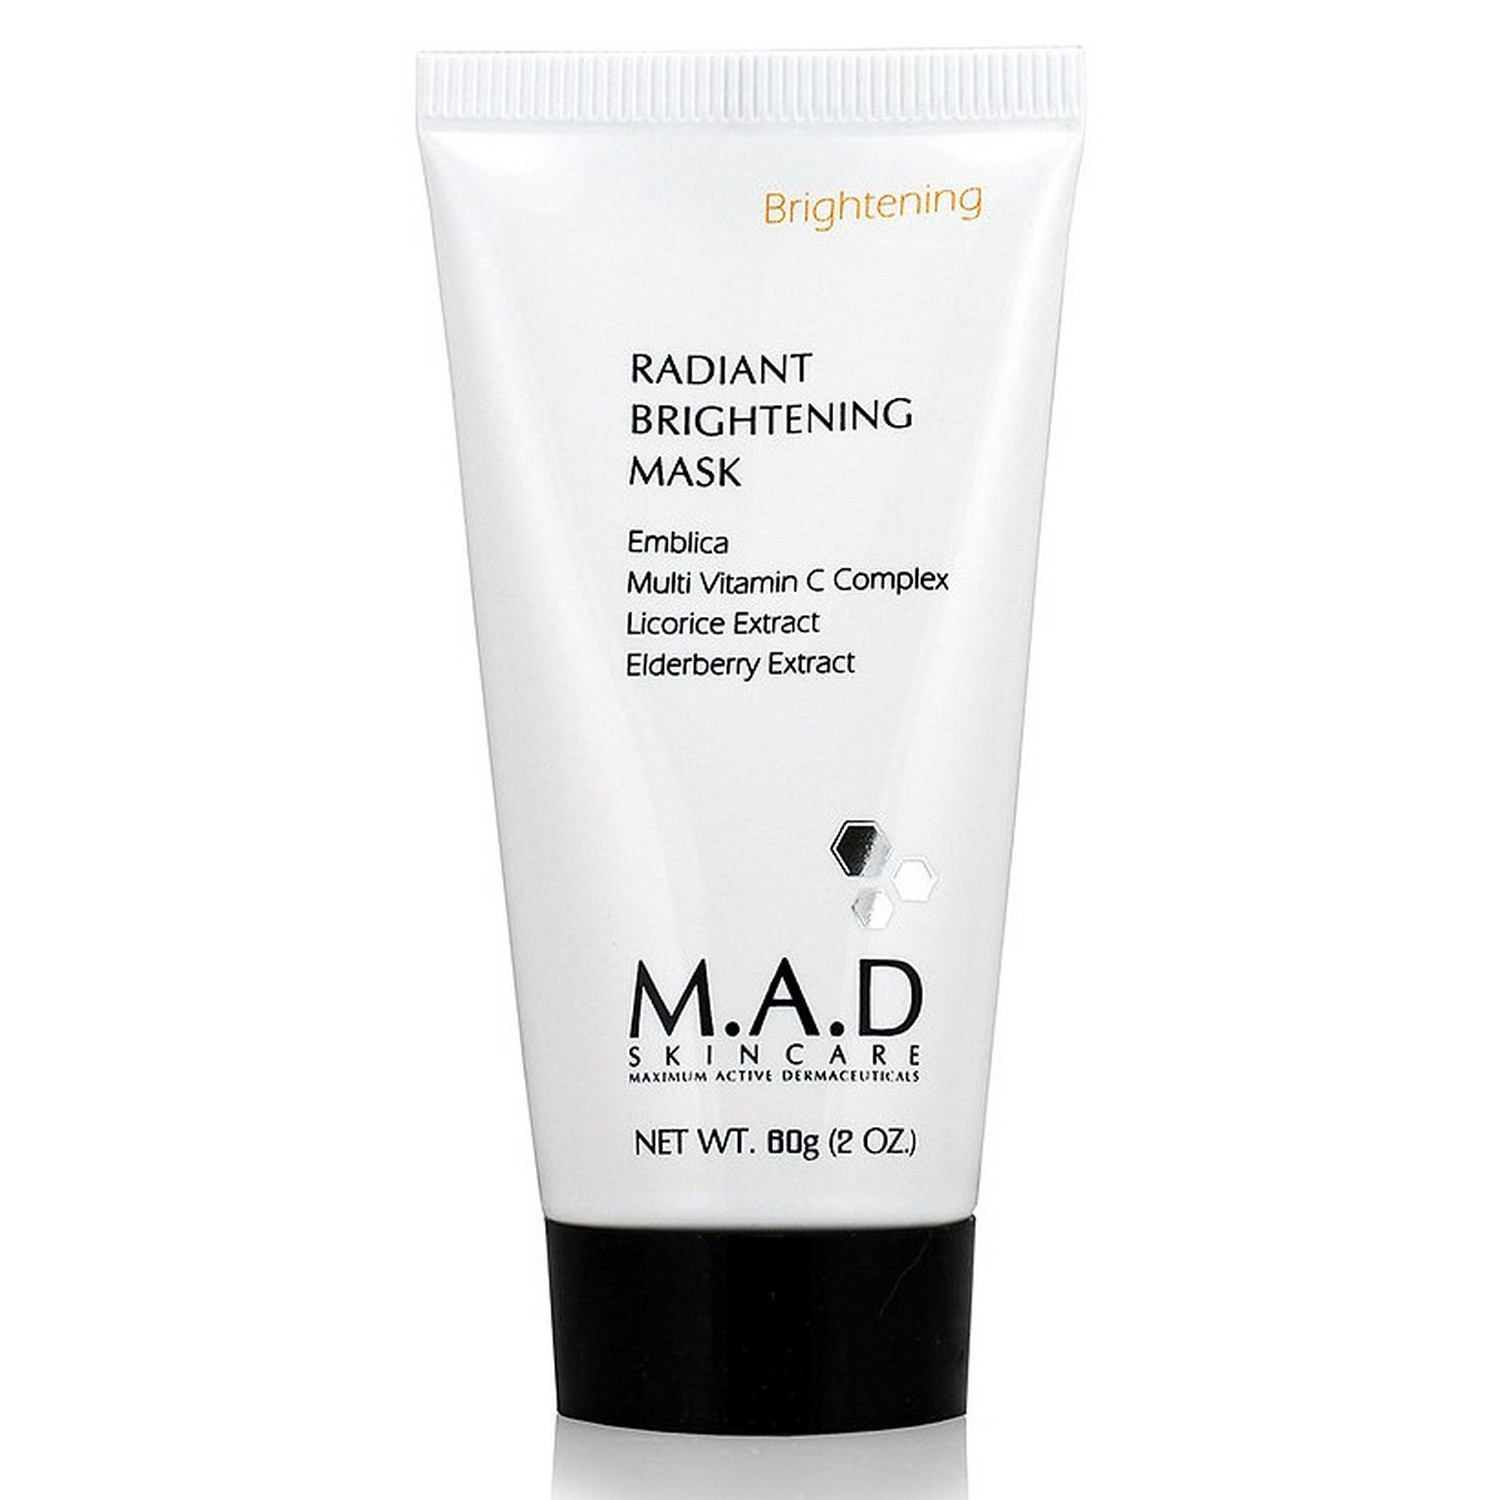 M.A.D SKINCARE RADIANT BRIGHTENING MASK (60 g / 2.0 oz)